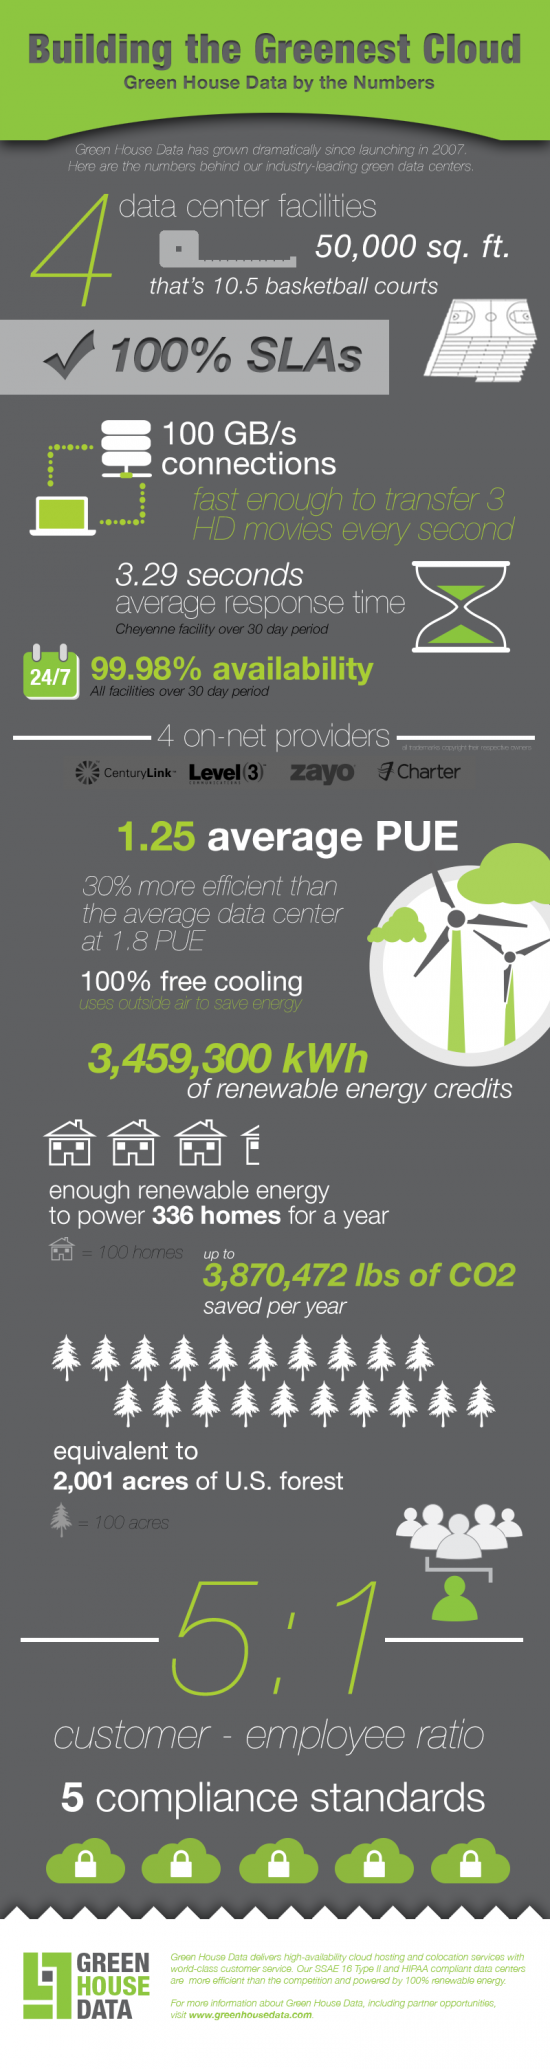 building the greenest cloud infographic